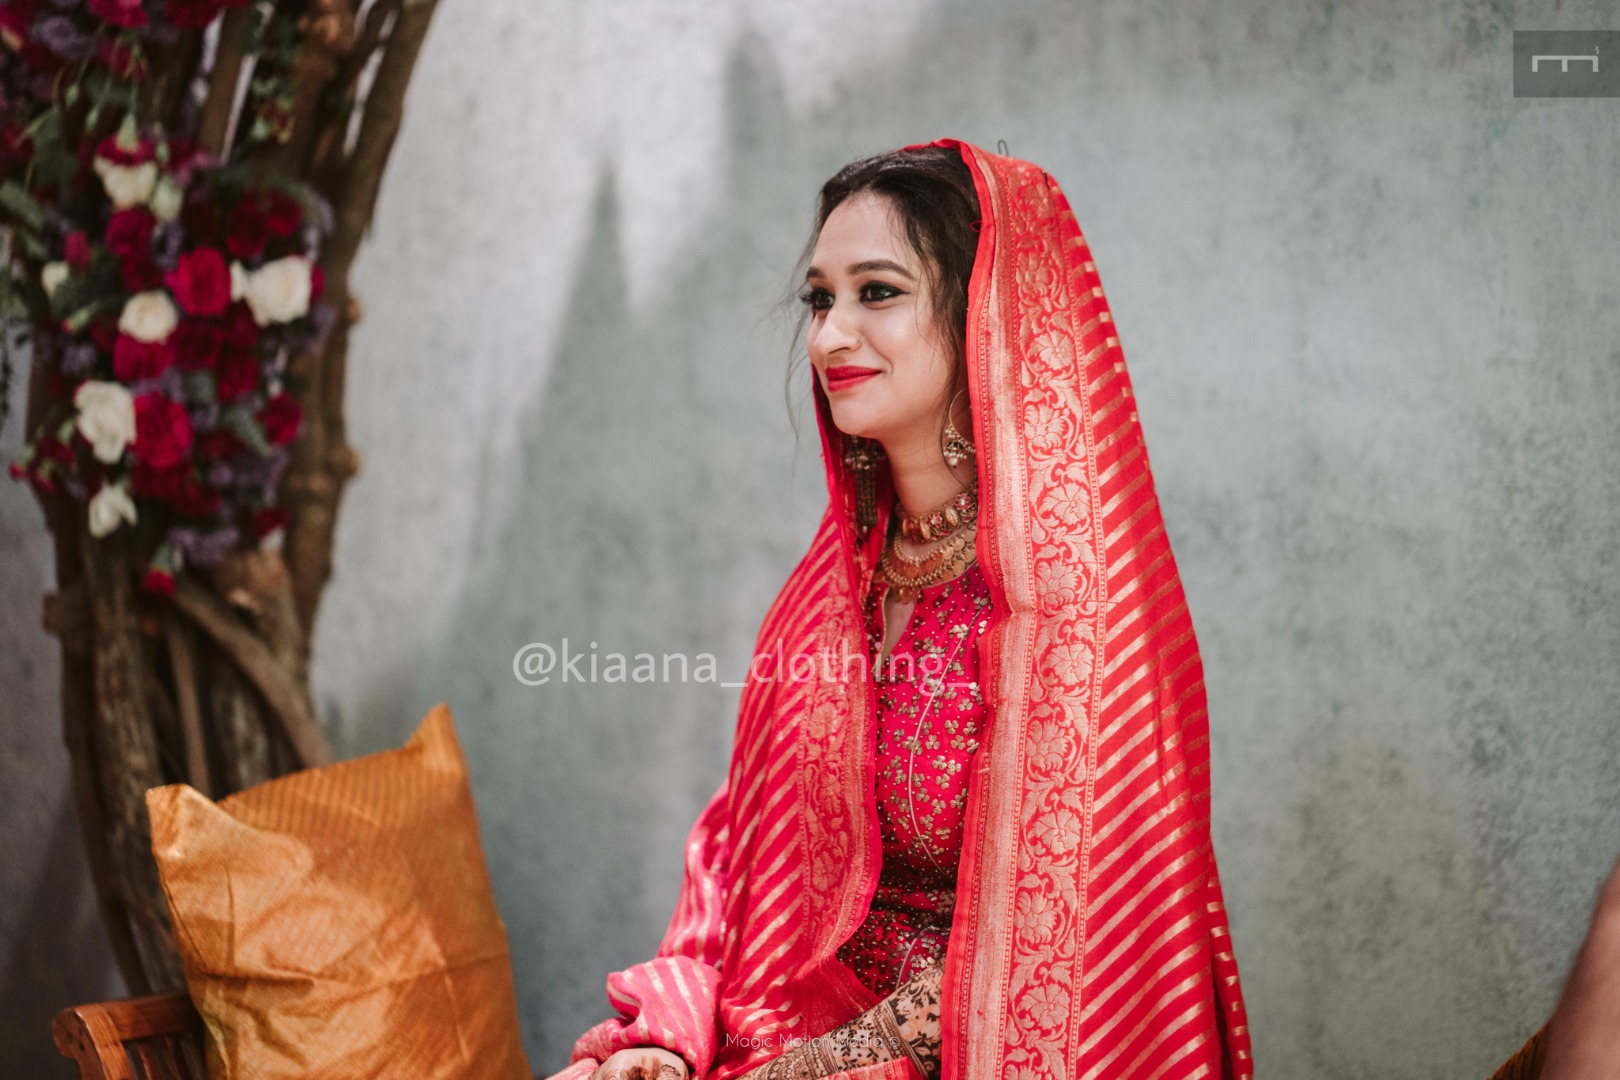 bride in red outfit